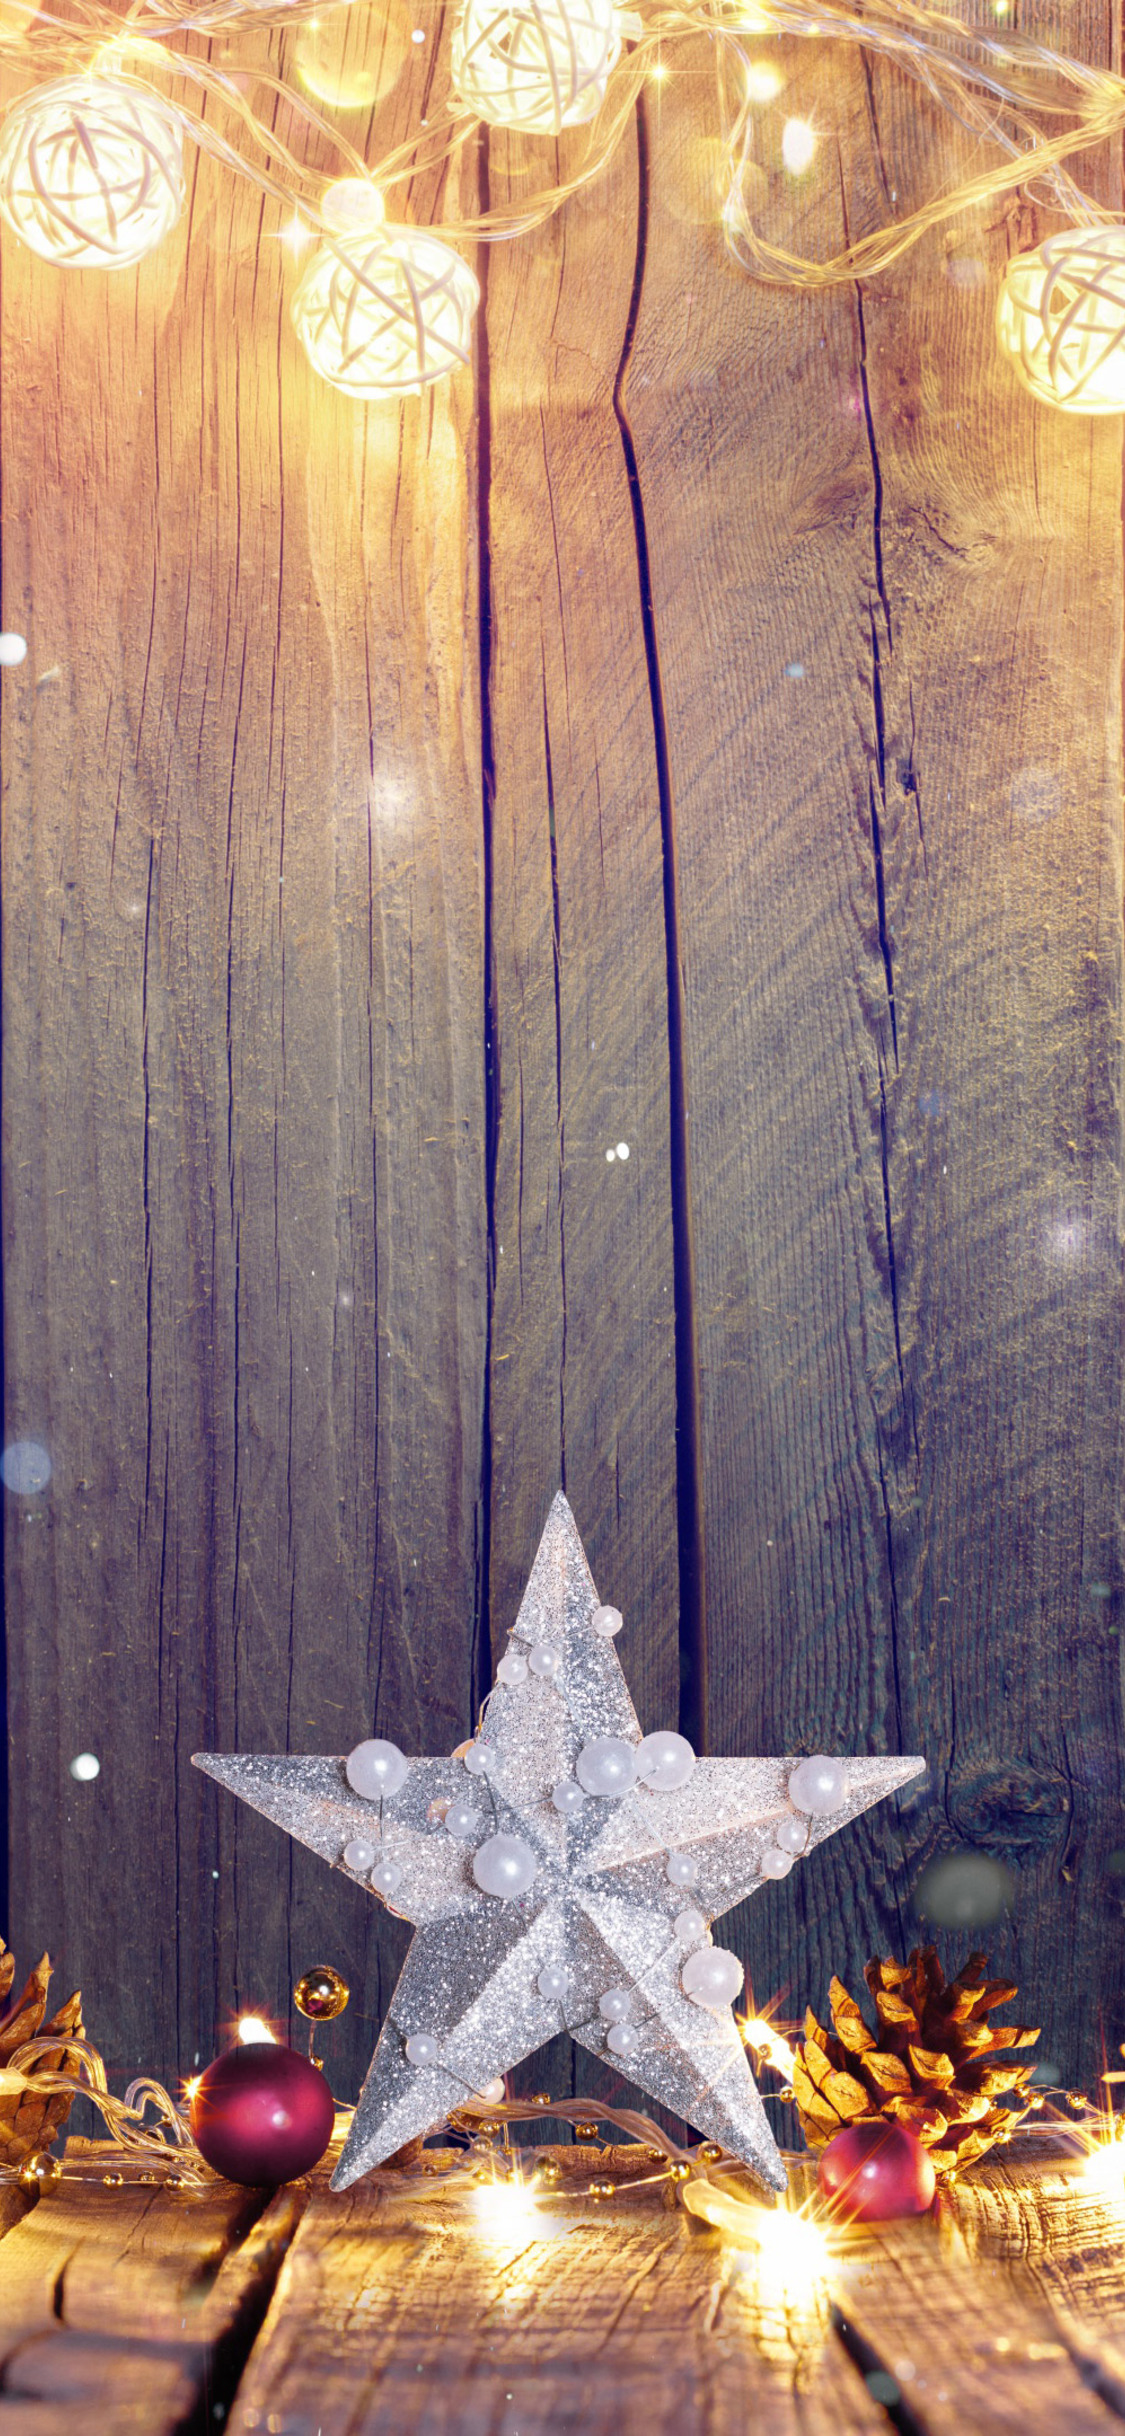 wooden christmas wallpaper for iPhone